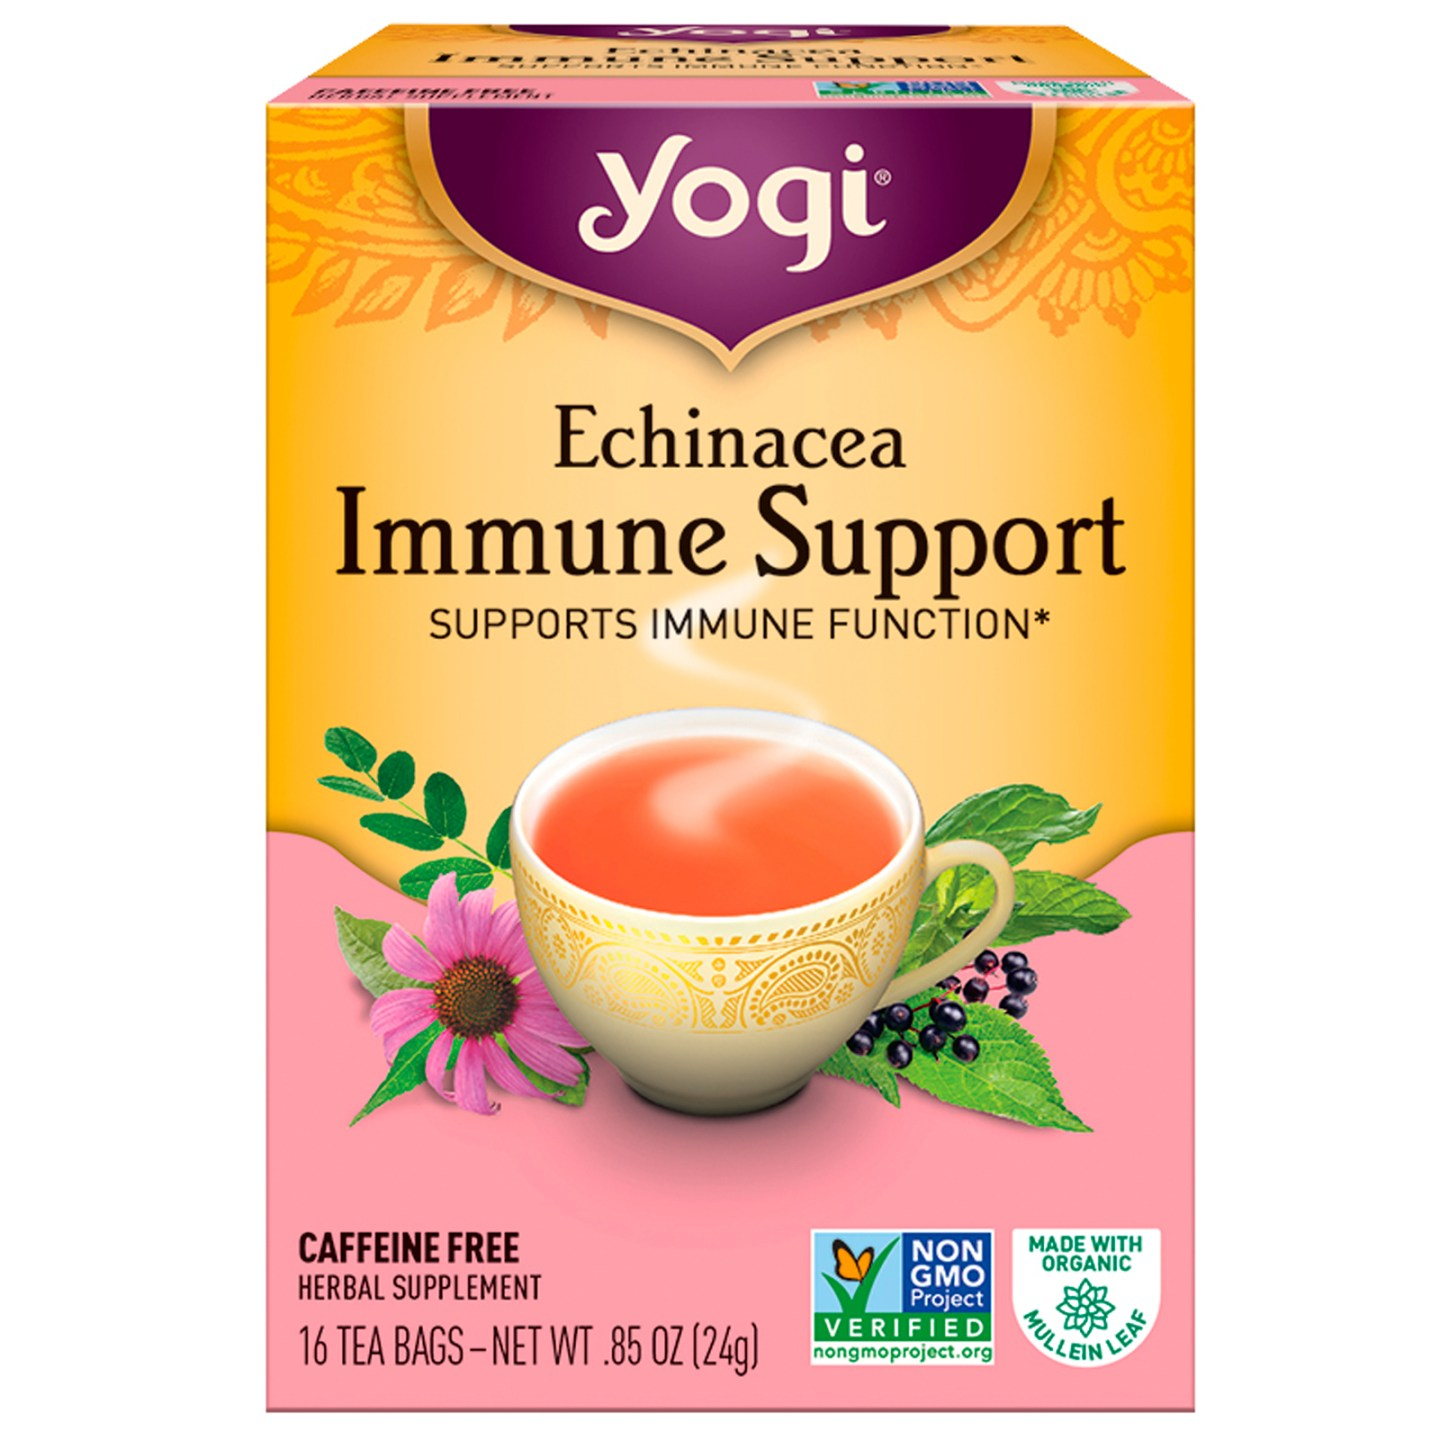 Yogi Echinacea Immune Support Tea